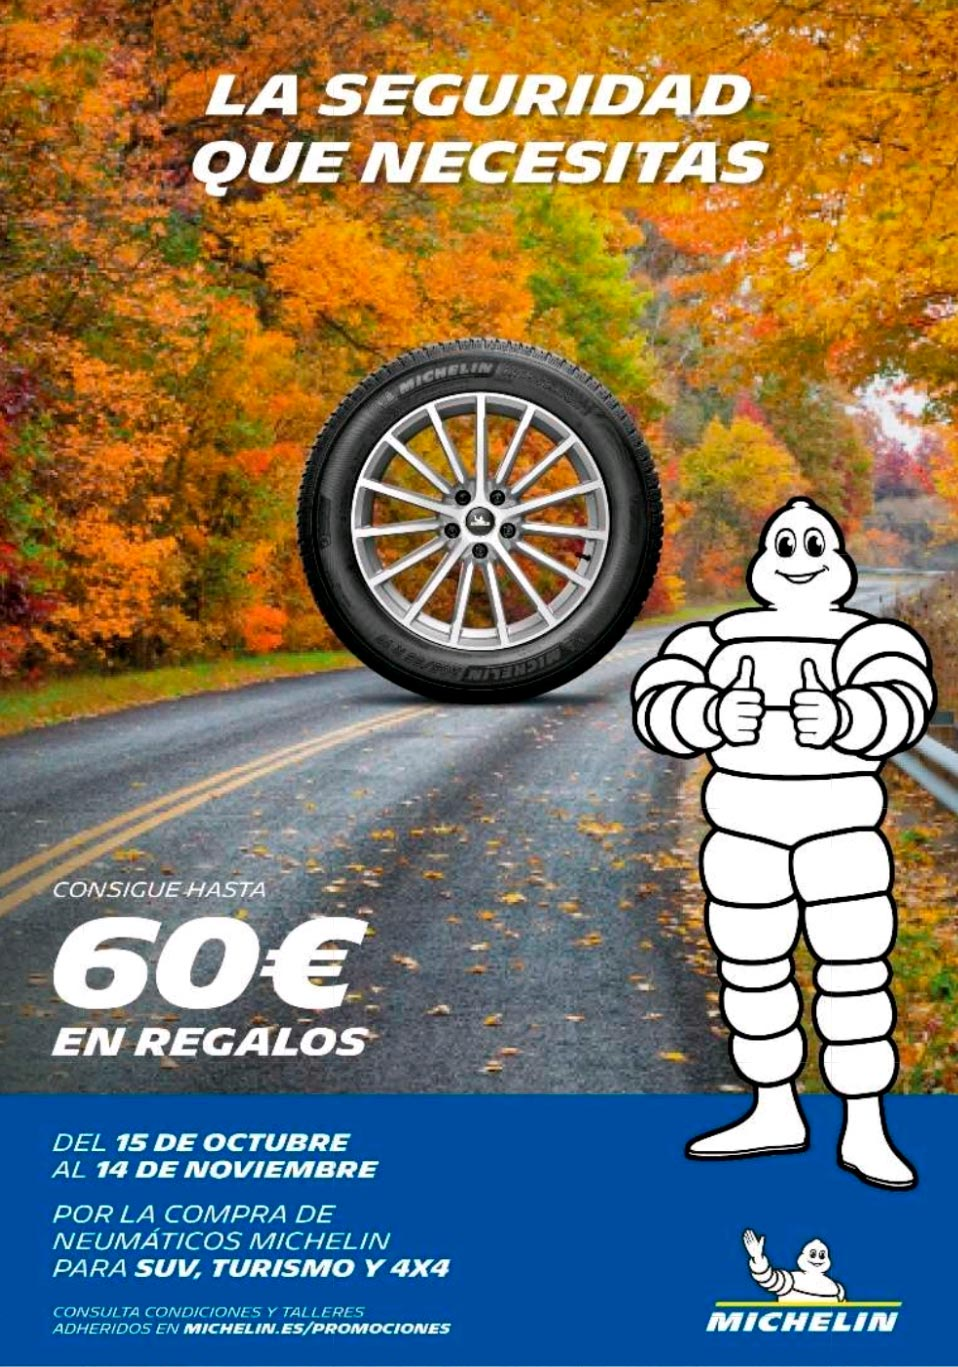 ¡Consigue hasta 60€ con Michelin!